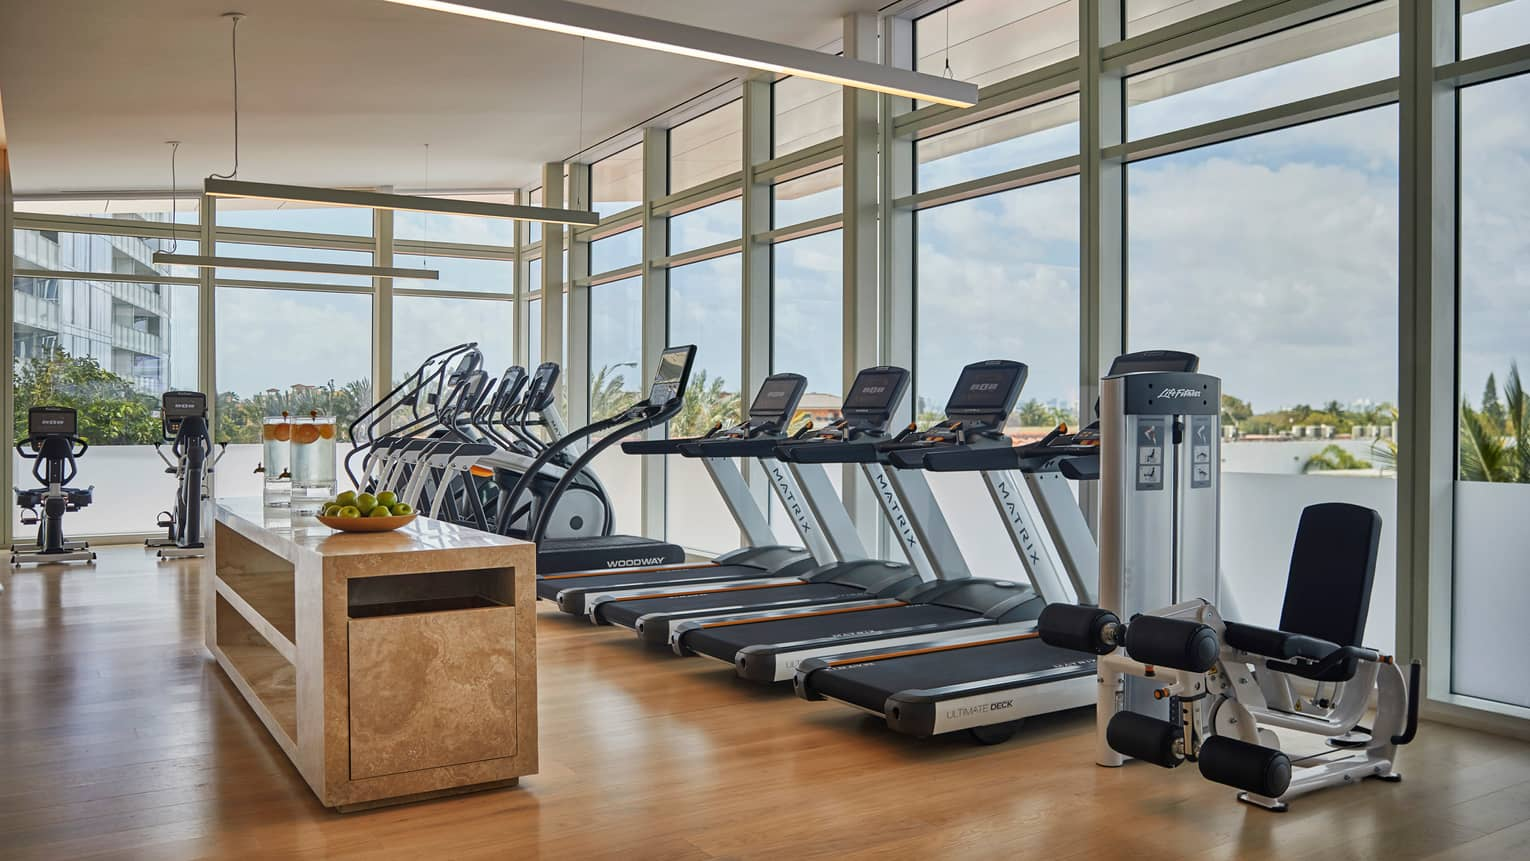 Indoor fitness facility with cardio and strength training equipment like treadmills and elliptical machines